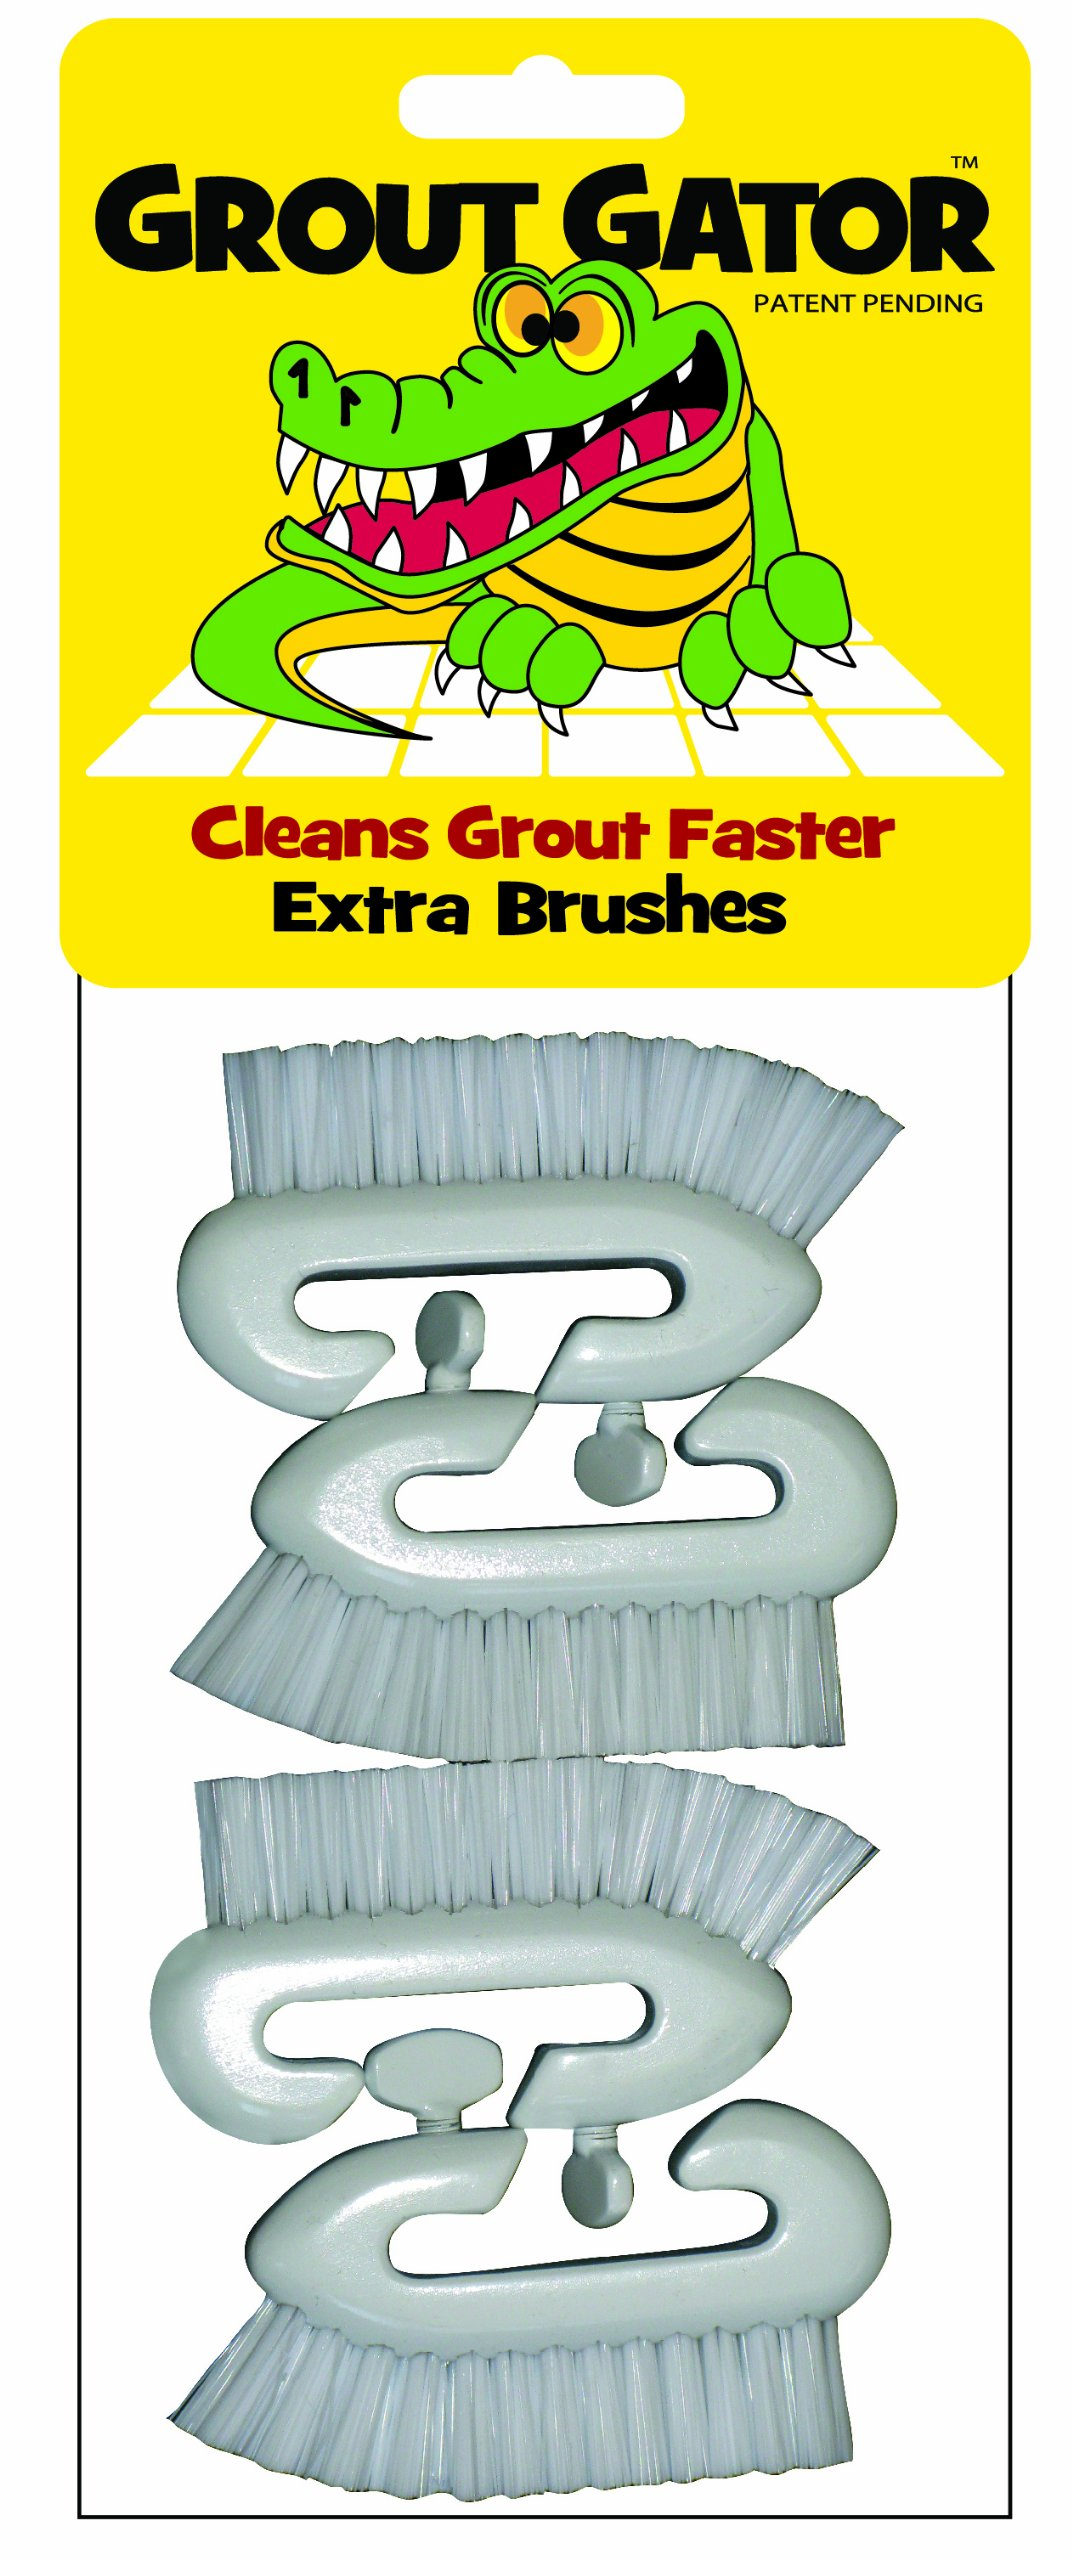 Grout Gator 4PACKBRHD Replacement Brush Heads, 4-Pack